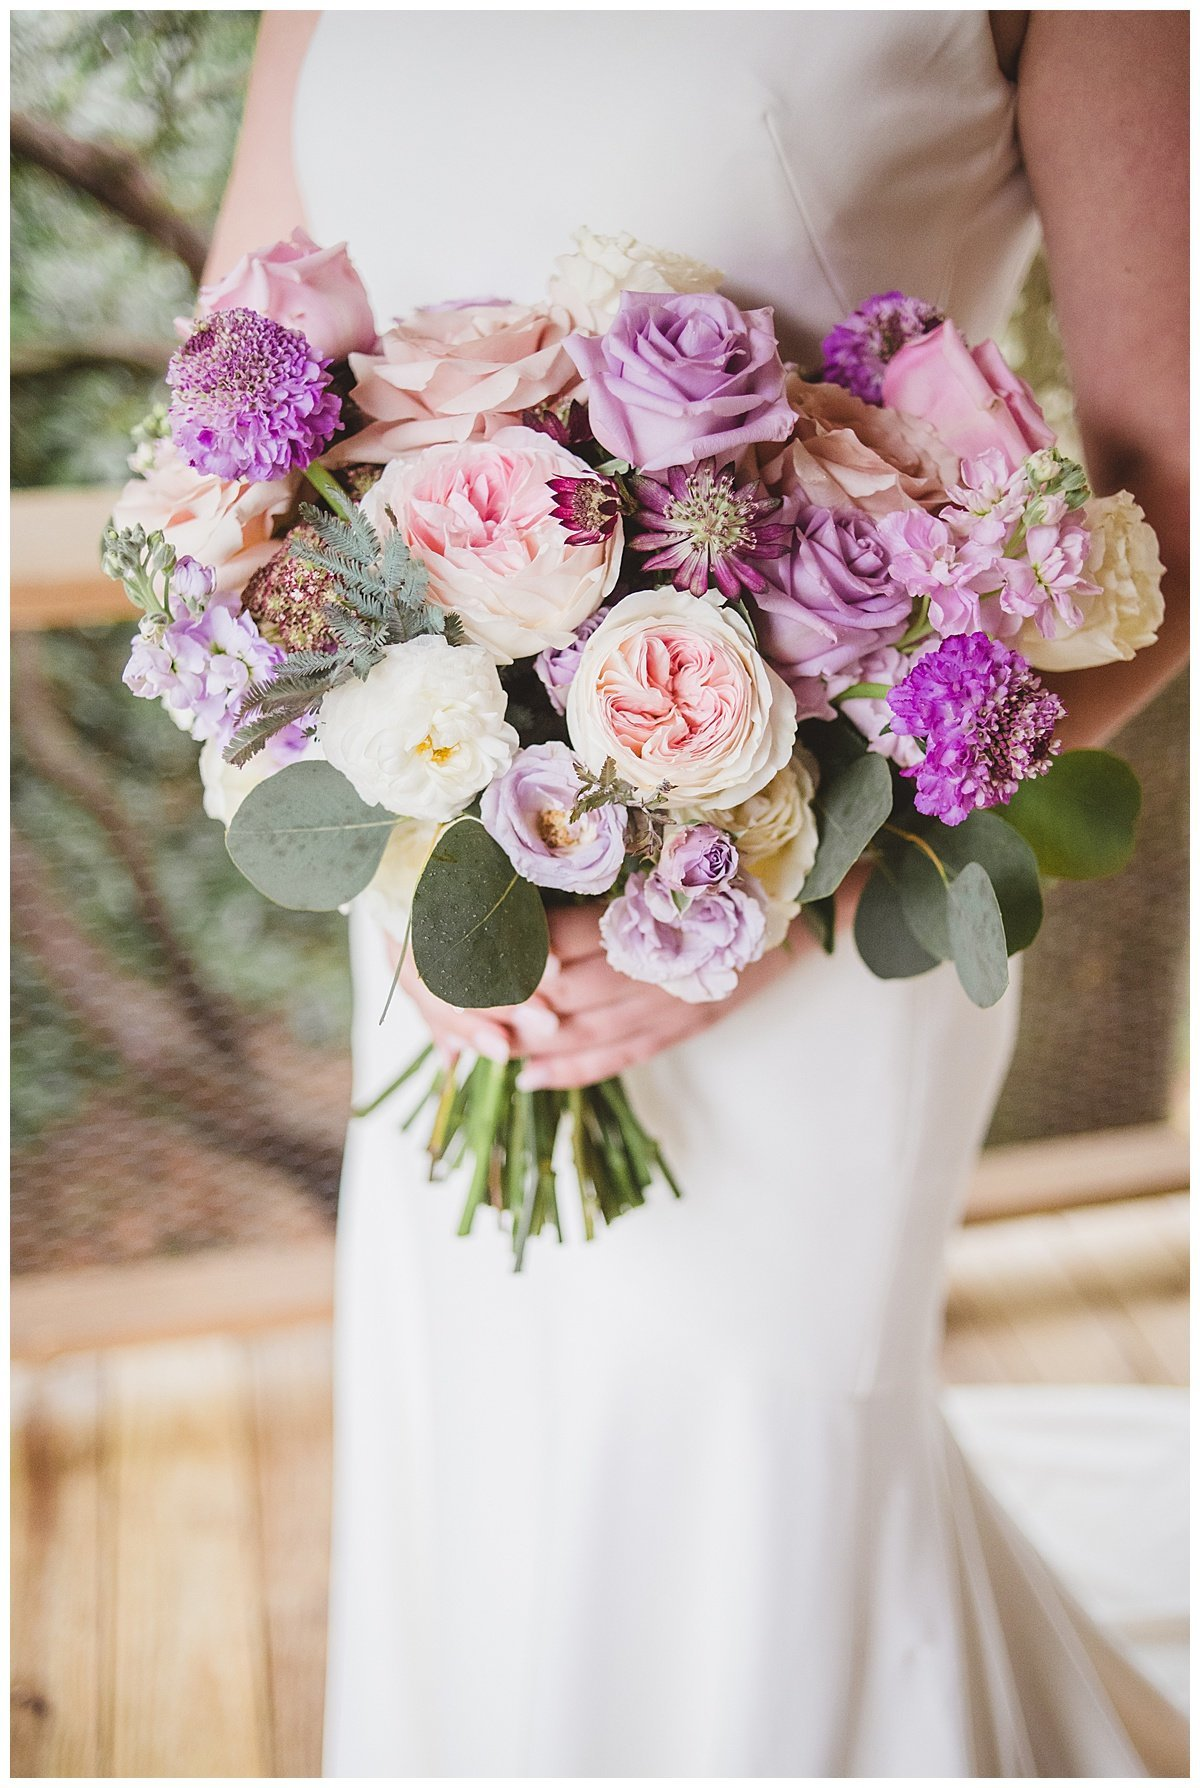 Destination-spring-barn-wedding-by-Omaha-wedding-florist-Lindsay-Elizabeth-Events-North-Carolina-Mountain-Garden-Rustic-Lavender-Purple-Pink-Wedding14